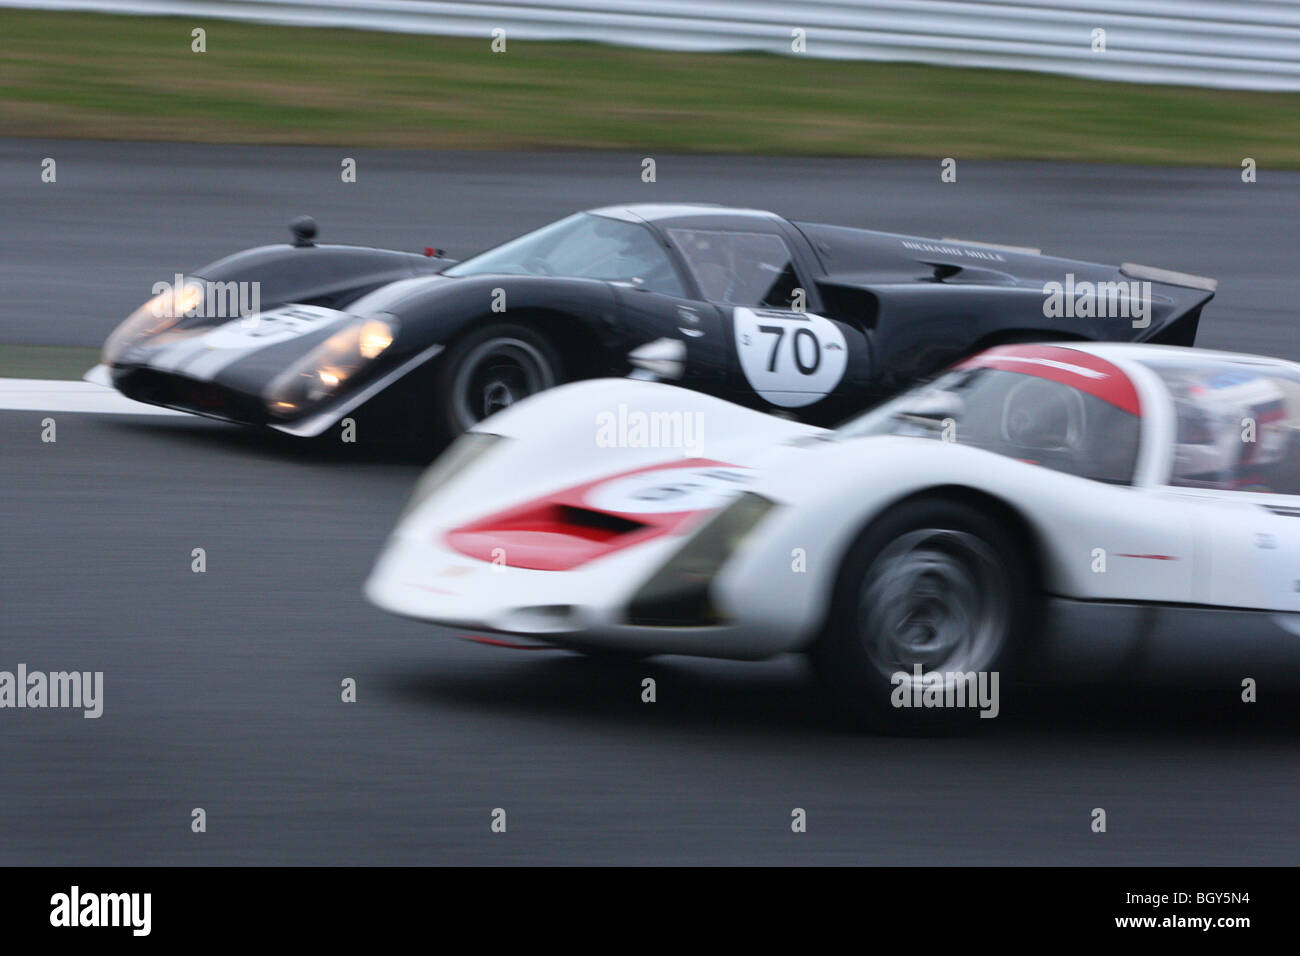 Vintage Porsche Race Cars Stock Photos & Vintage Porsche Race Cars ...